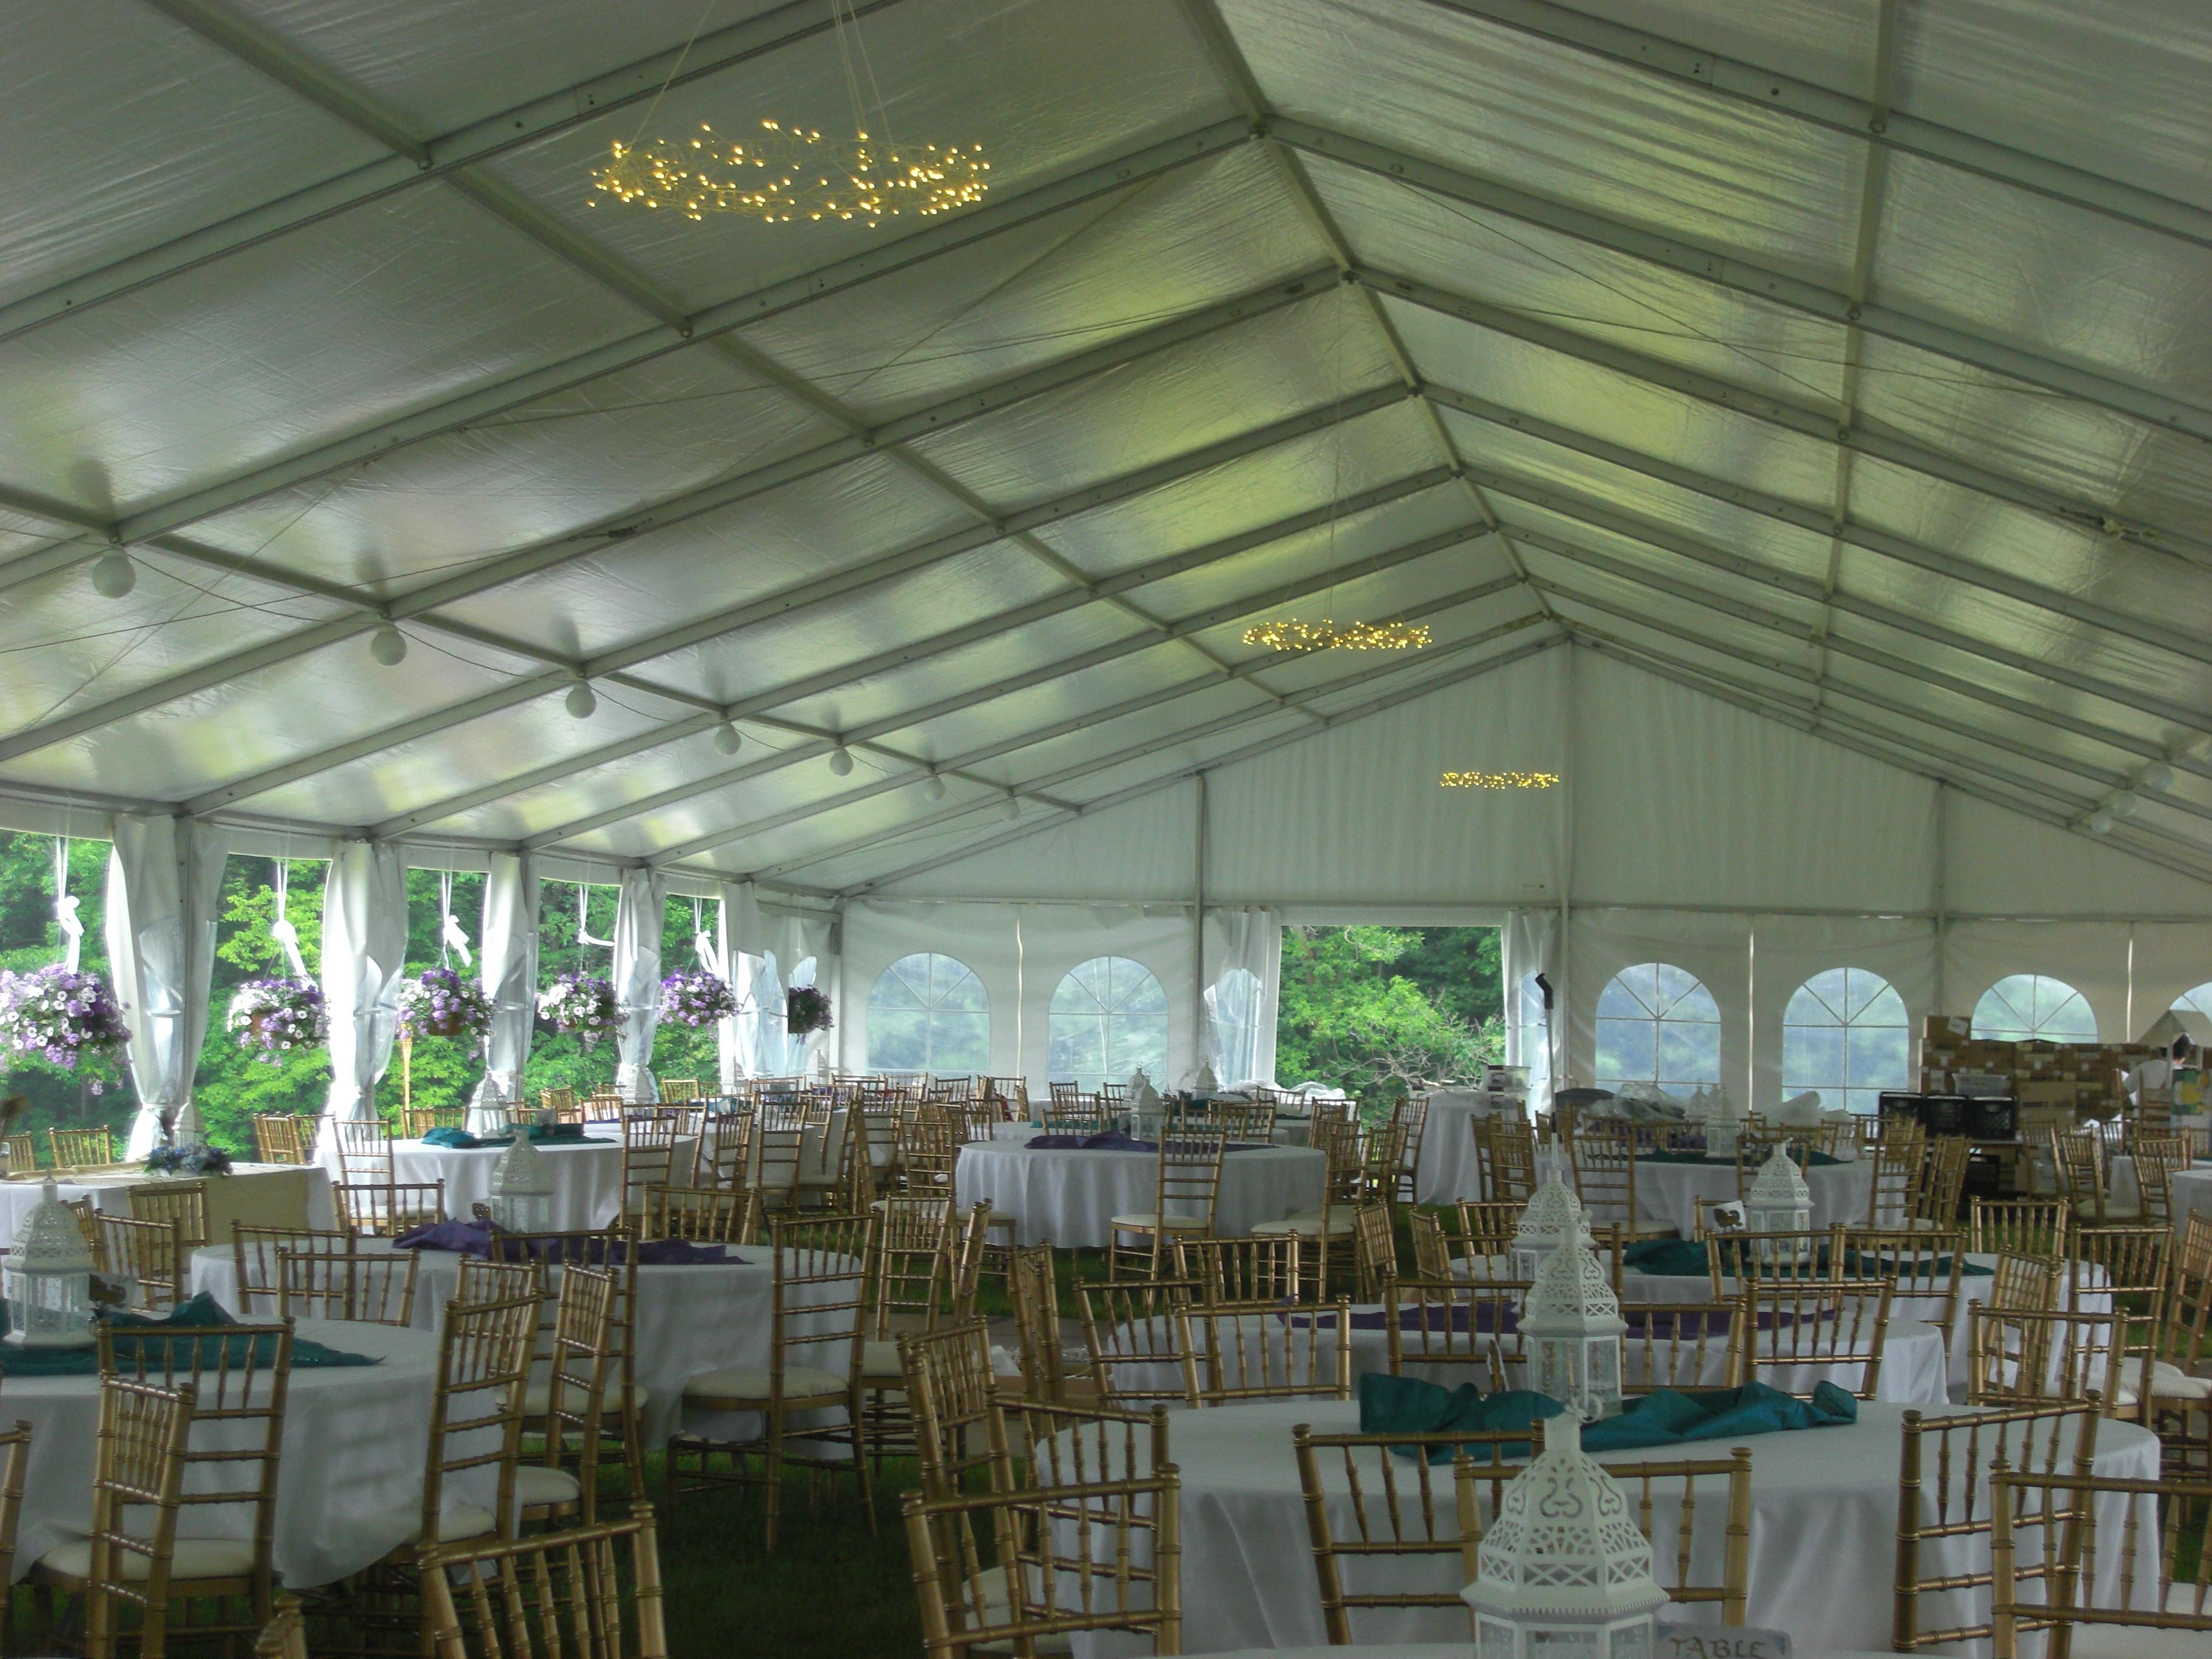 Sun Rental Equipment Rental And Party Rental In Mentor Oh Party Rentals Wedding Rentals Event Rental